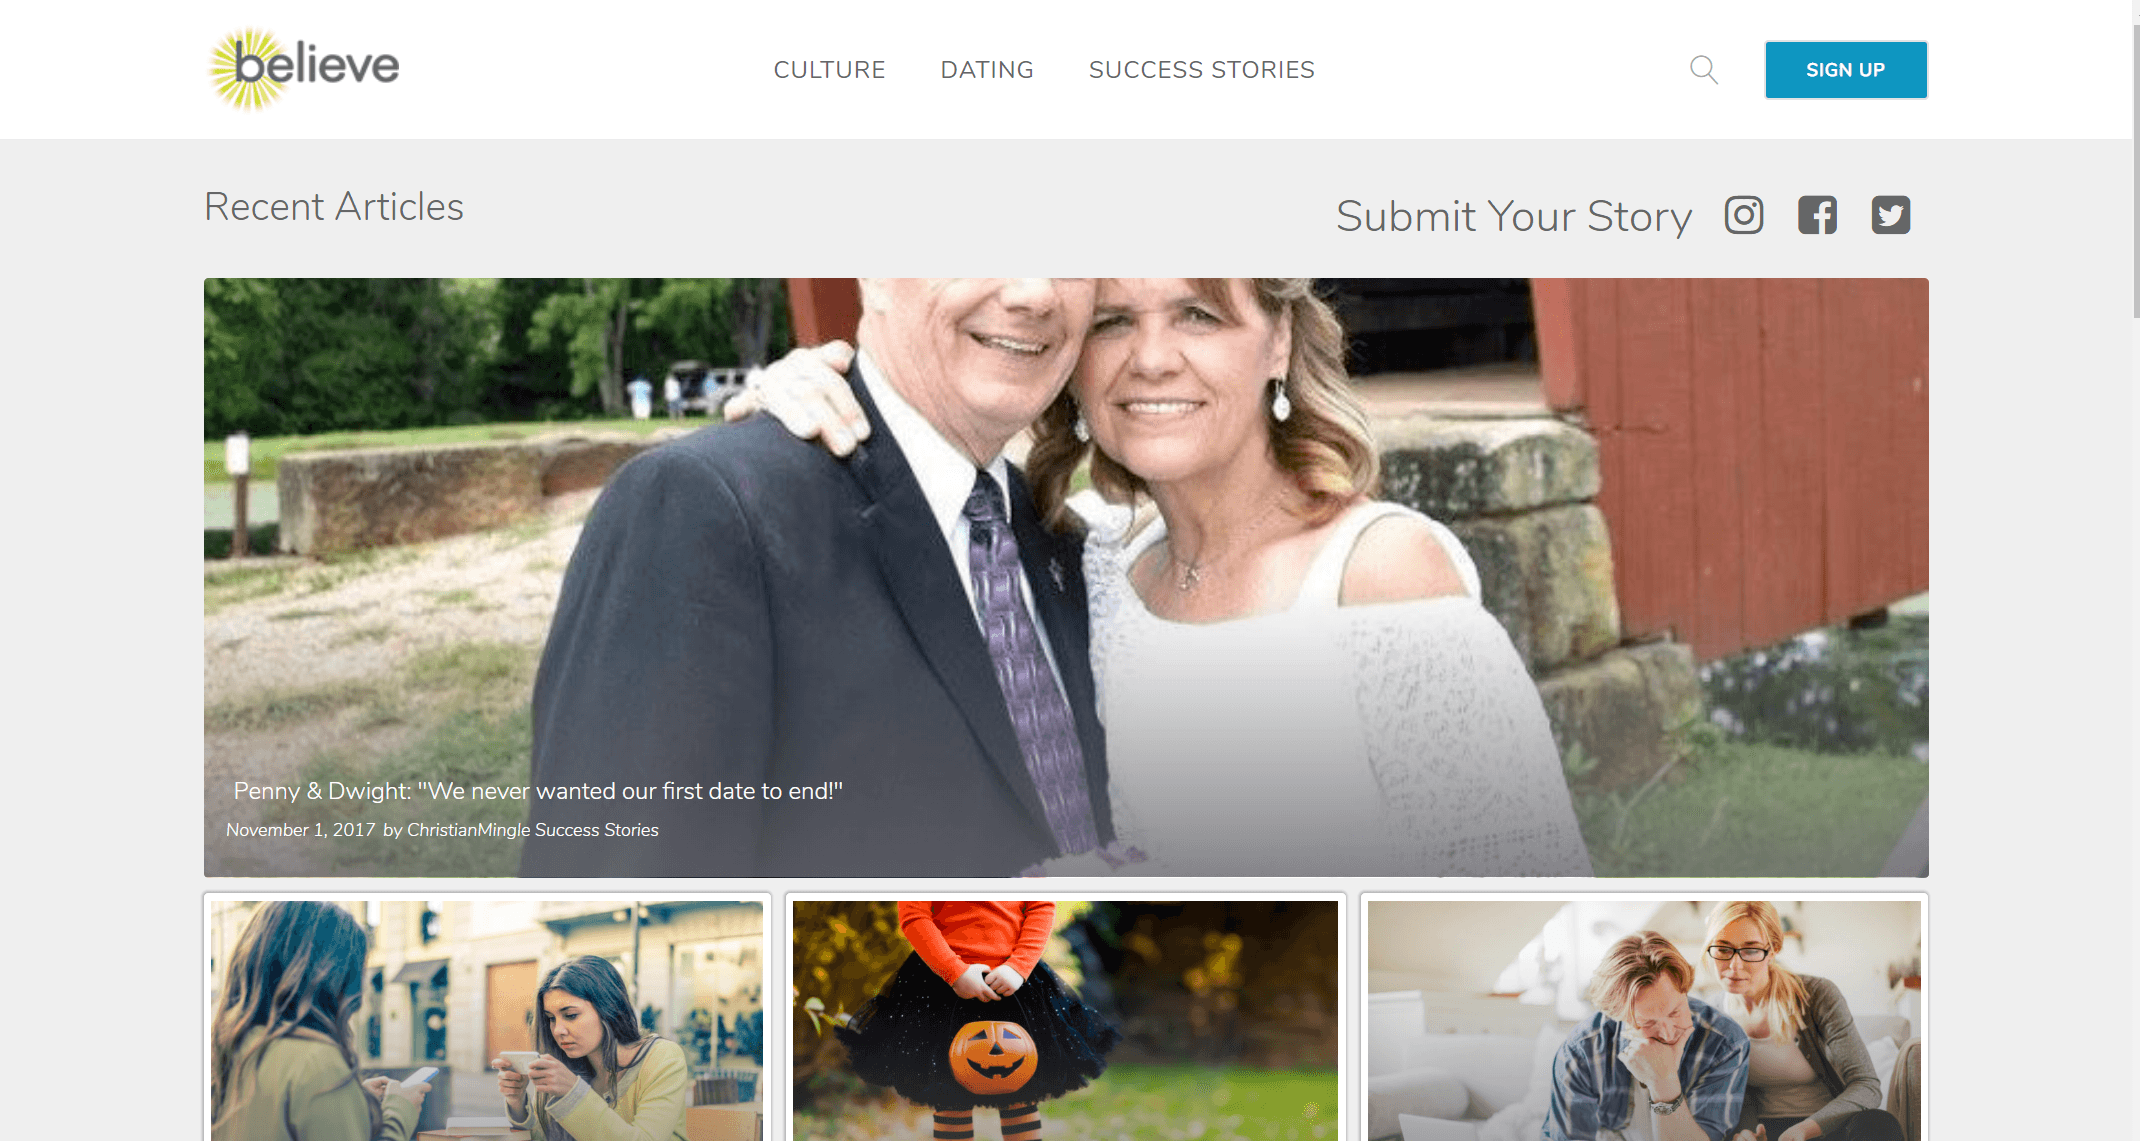 Christian mischen dating site review